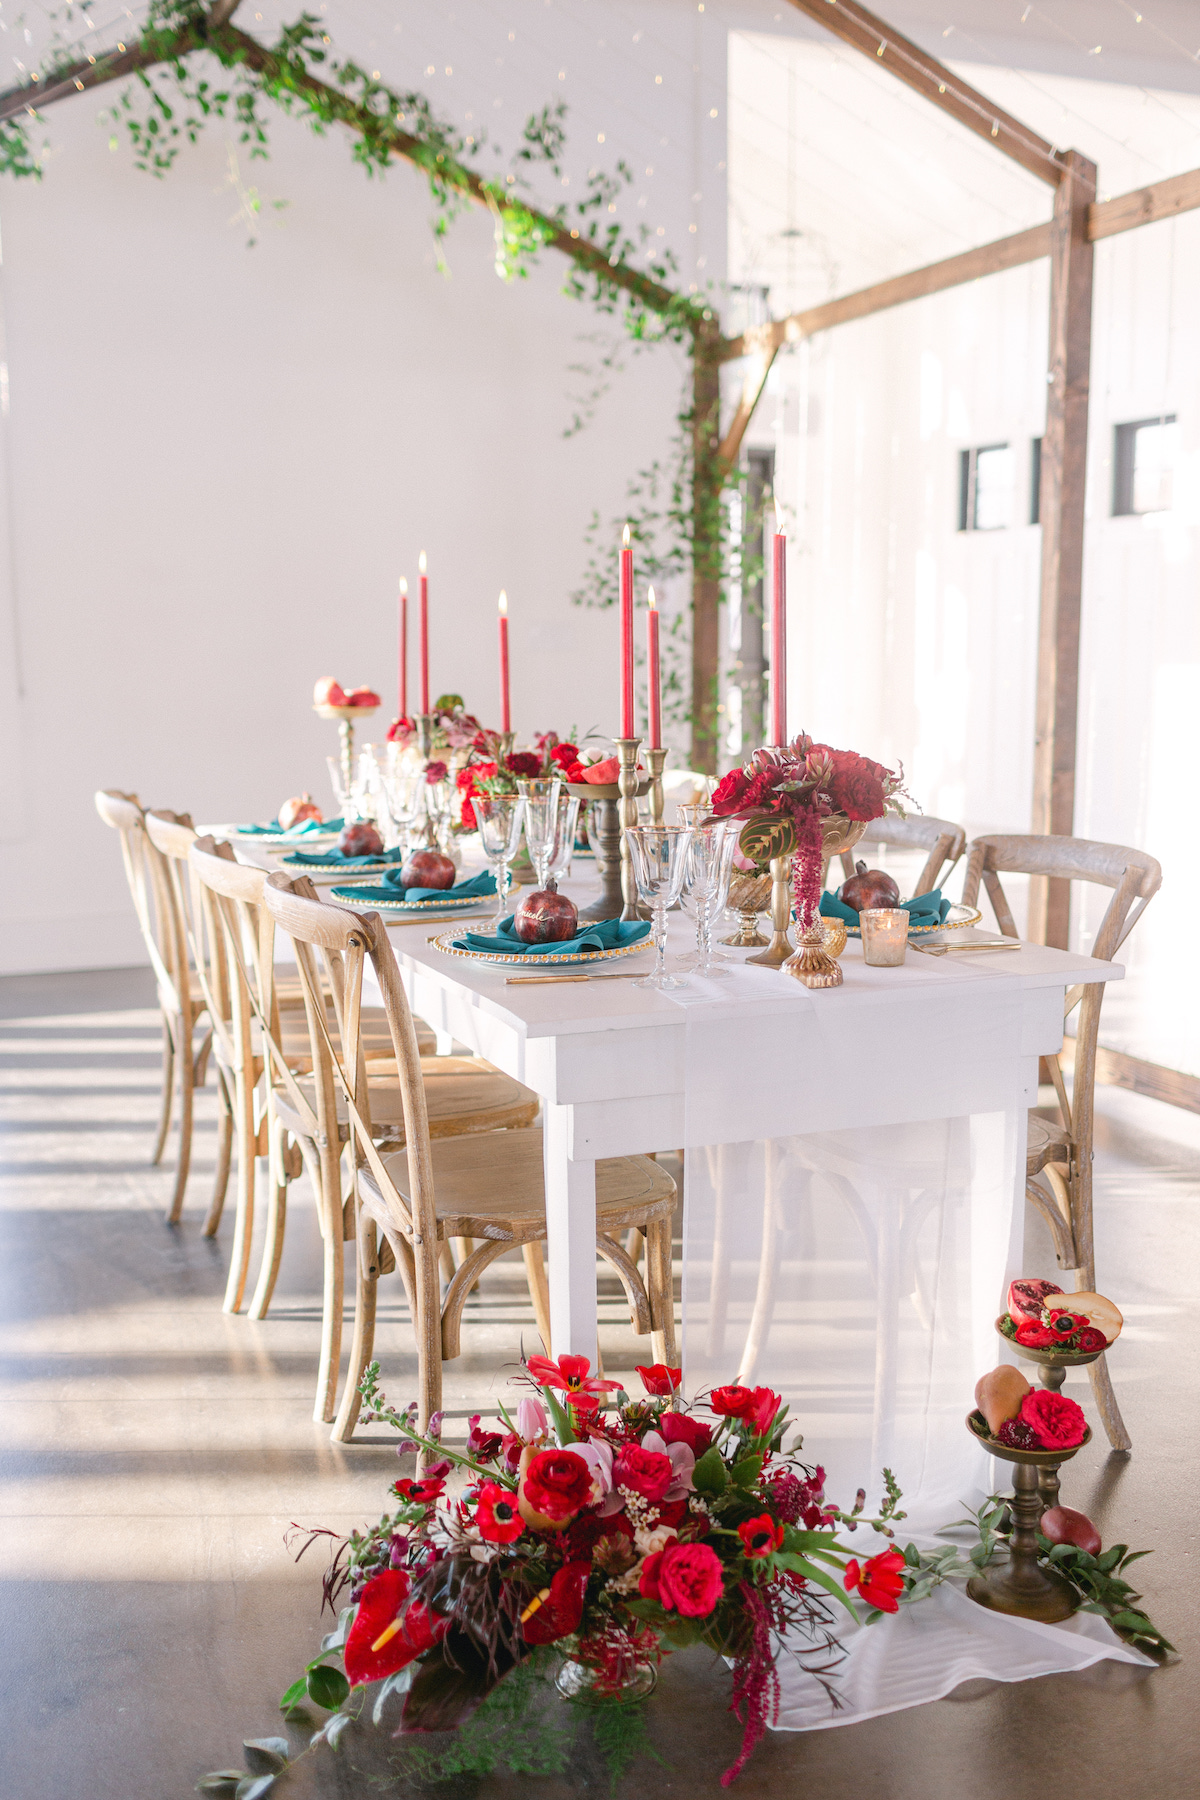 Winter wedding tablescape decorations - 5th Fine Art Photography